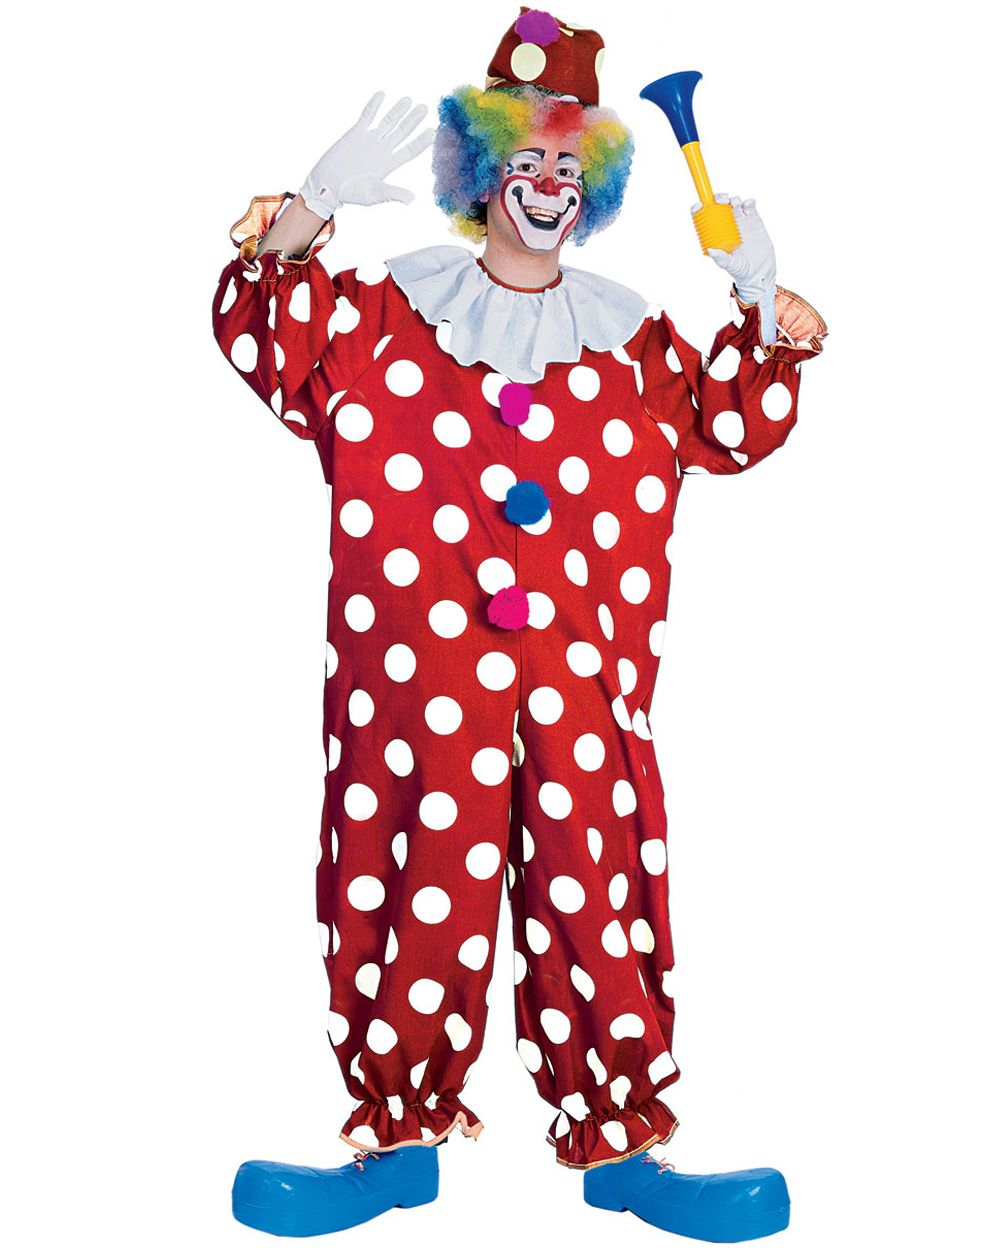 moppie the clown costume costumes halloween costumes